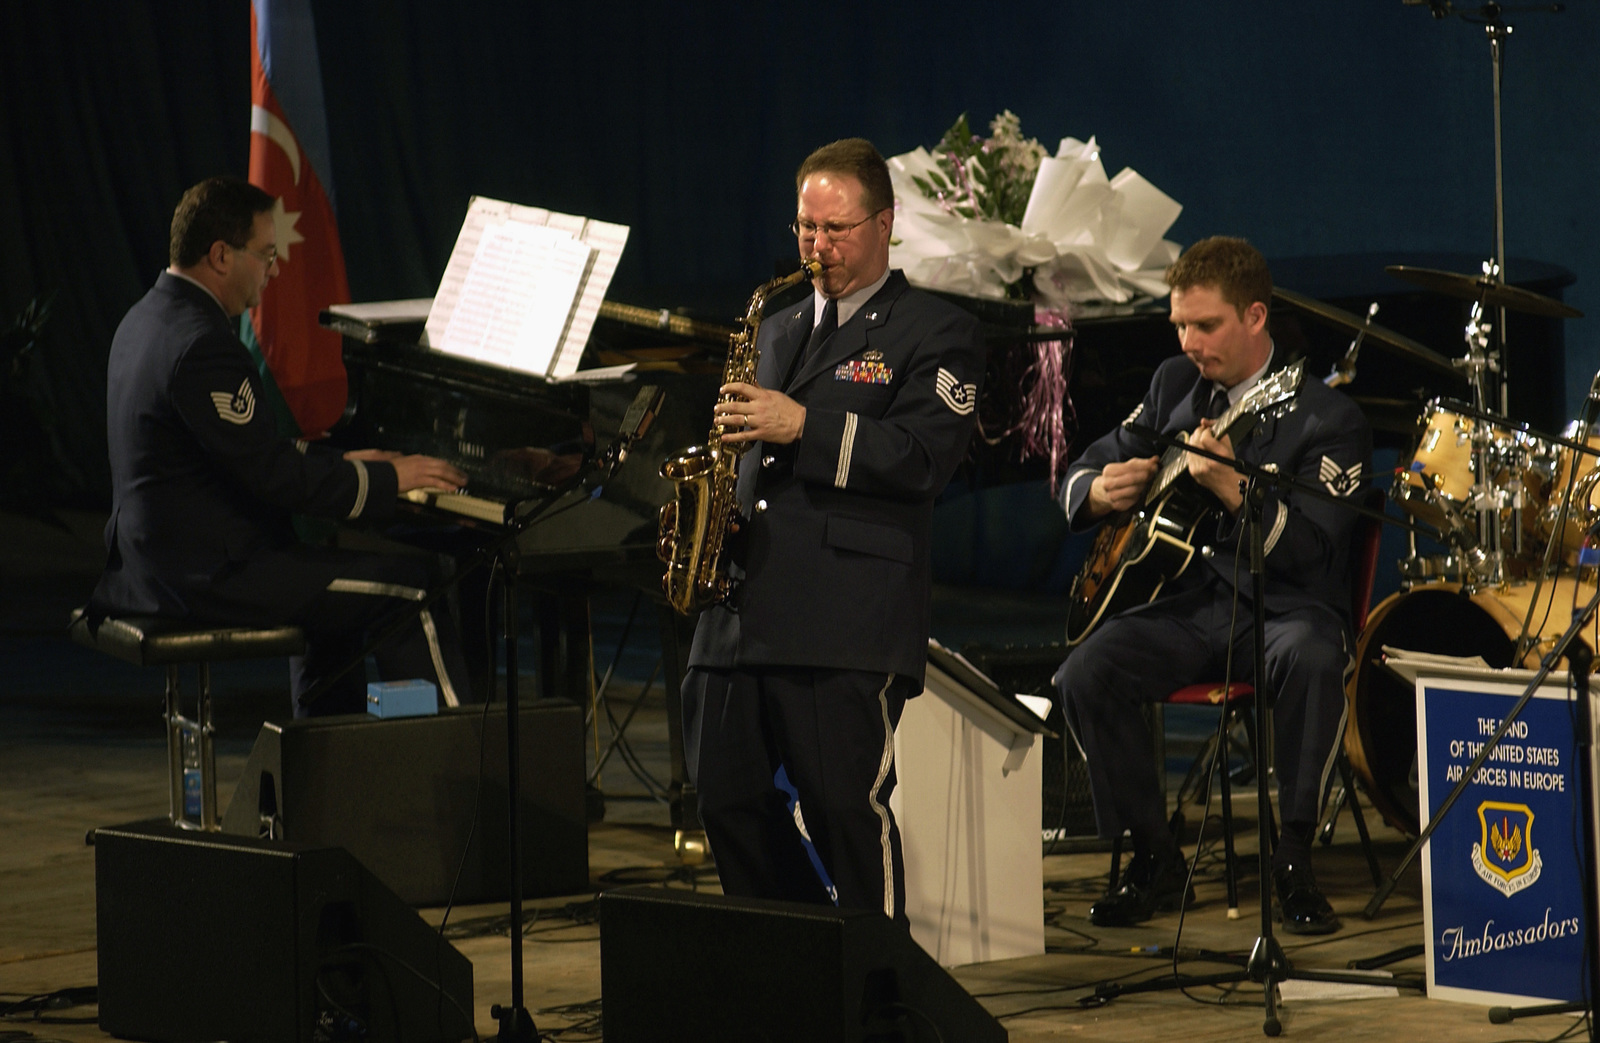 """Technical Sergeant (TSGT) Bill King with the United States Air Force in Europe (USAFE) Jazz Band, The Ambassadors, performs the alto saxophone solo of """"Till You Come Back to Me"""" during the Caspian Jazz and Blues Festival, in Azerbaijan"""